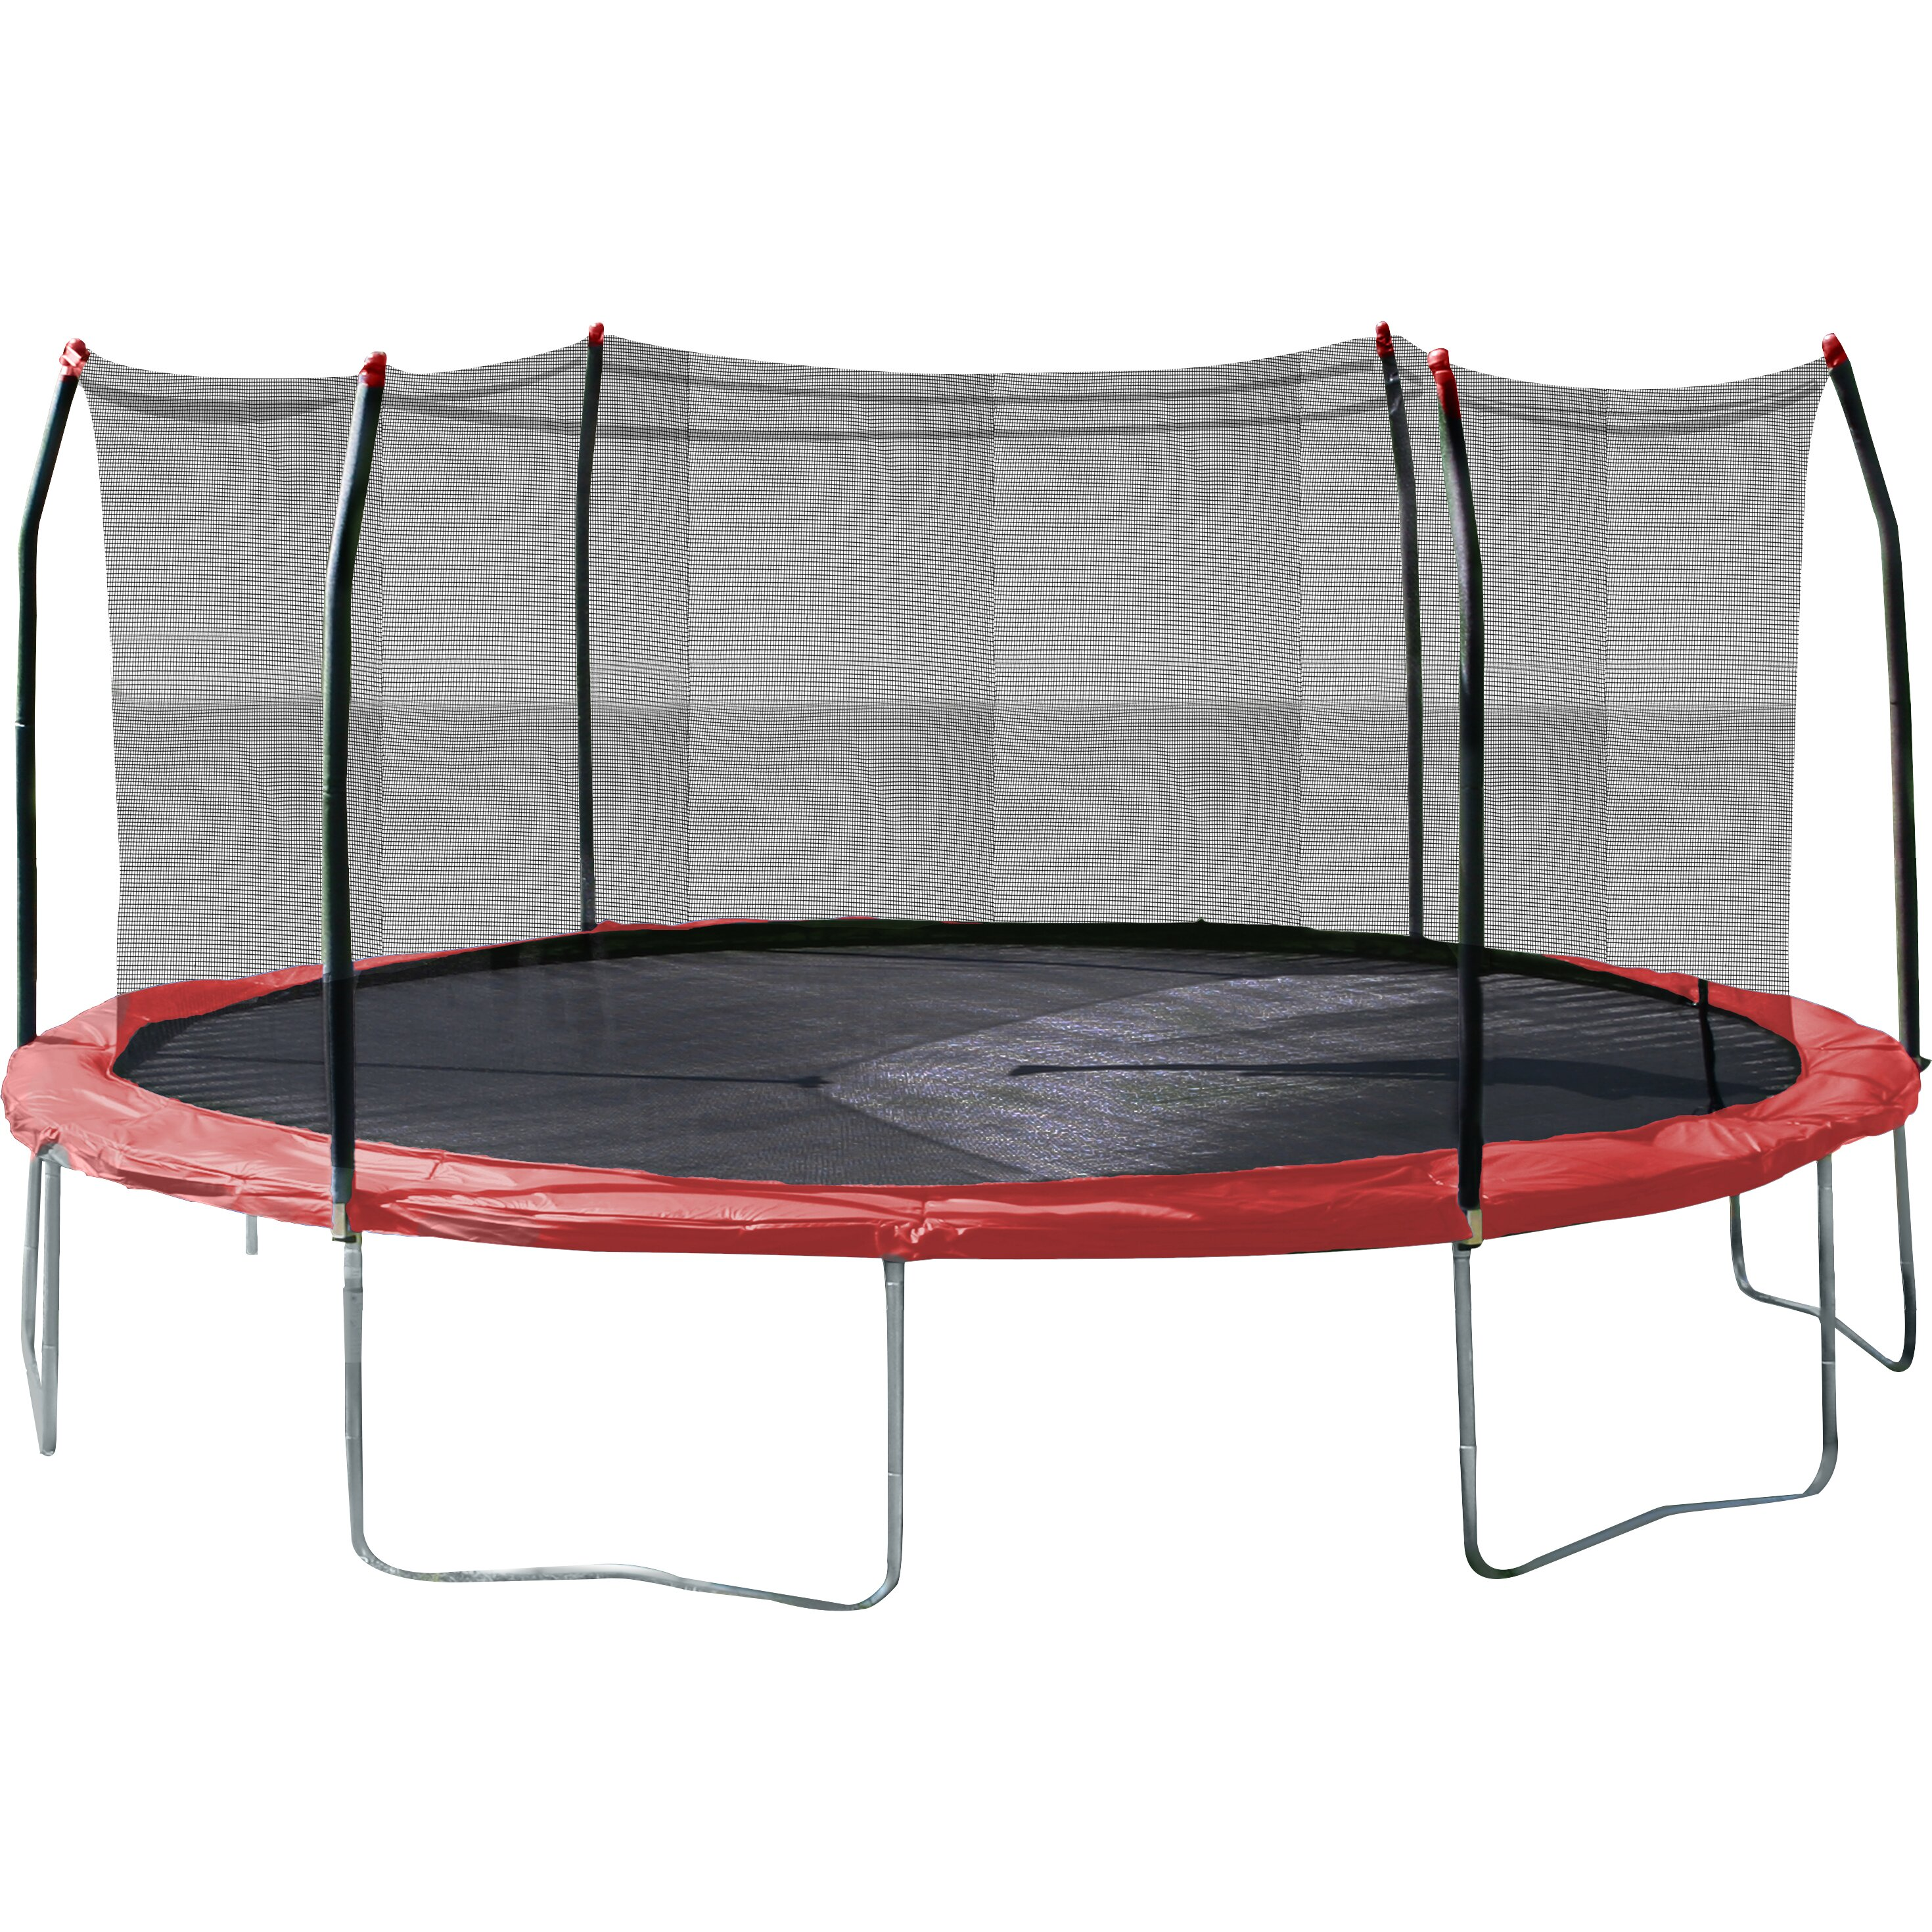 17' X 15' Oval Trampoline With Safety Enclosure